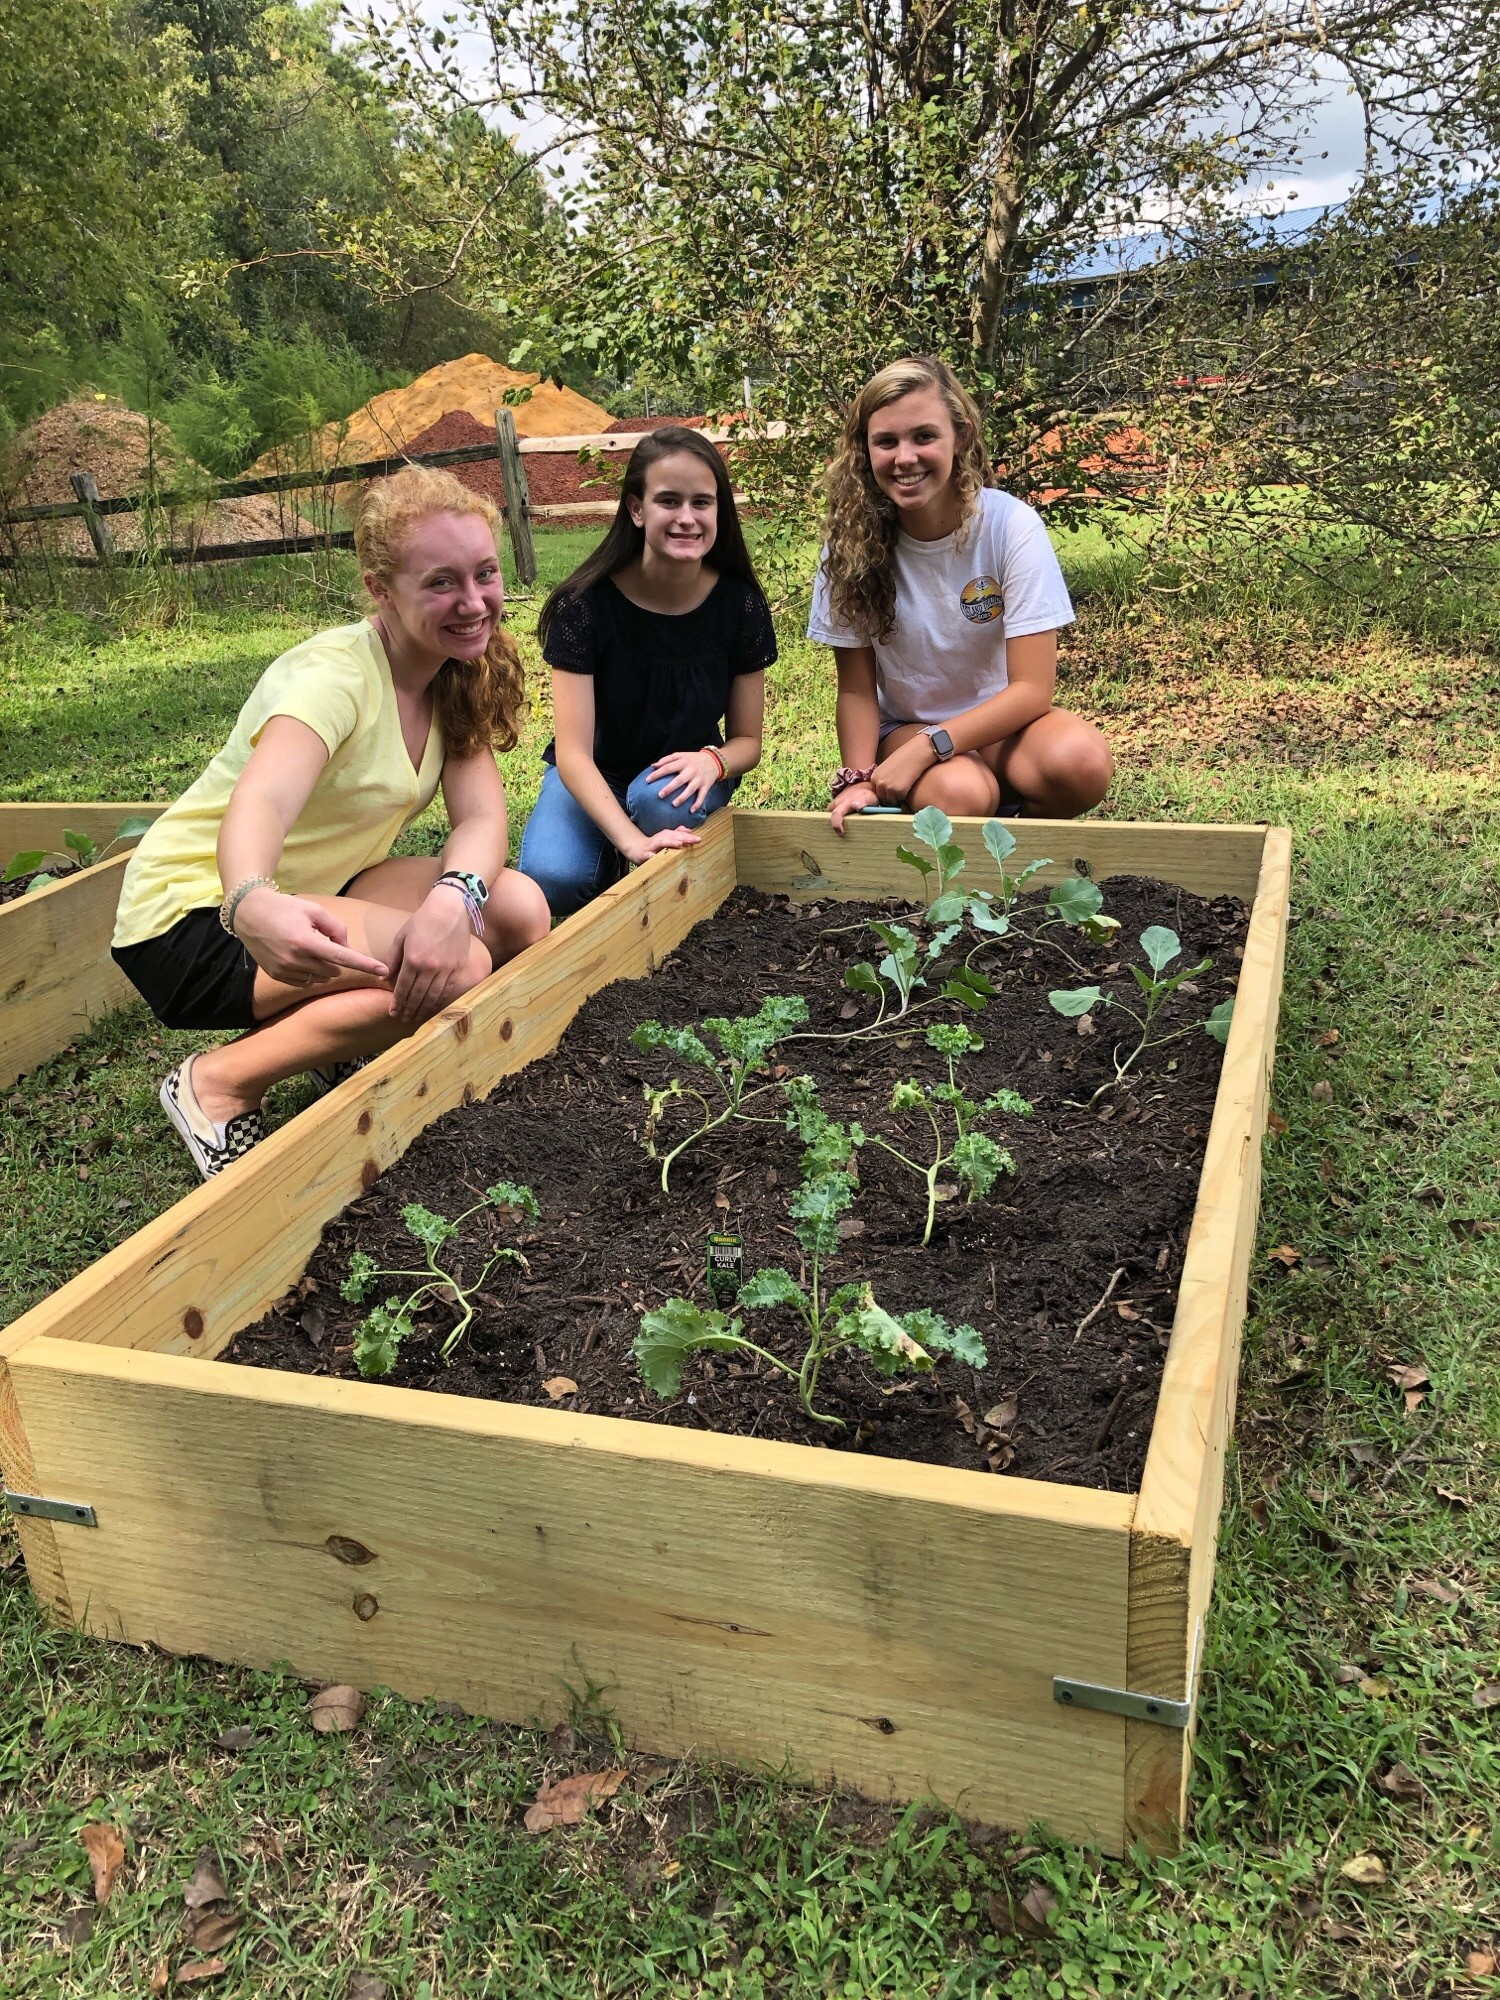 Parrott 9th graders tend a raised bed of broccoli in the school's new vegetable garden (Left to right) Killen Harper, Mary Frances Fields, and Kat Owsley. 252-560-5893 (c )